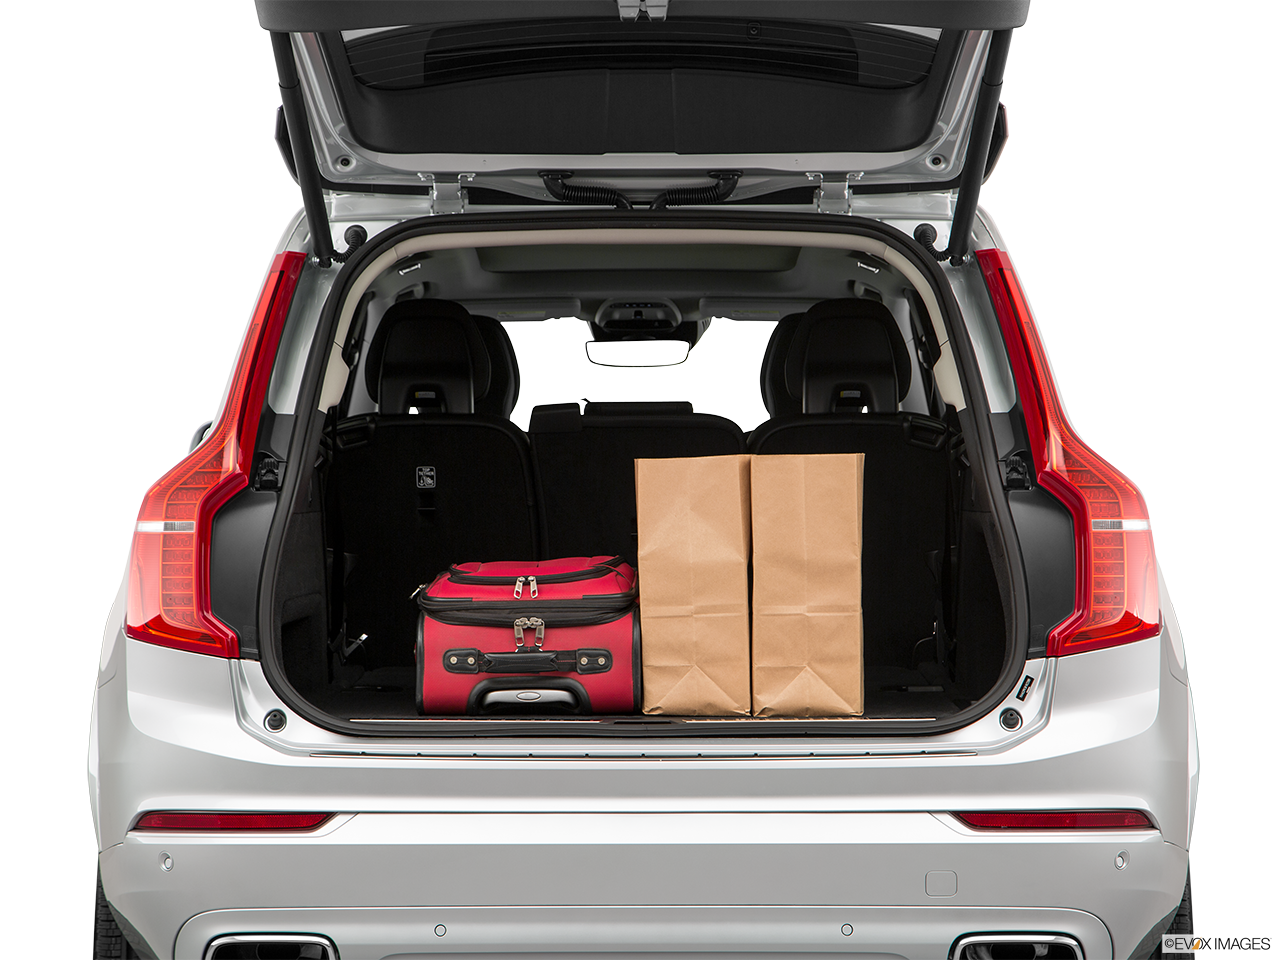 Trunk view of the Volvo XC90 PHEV